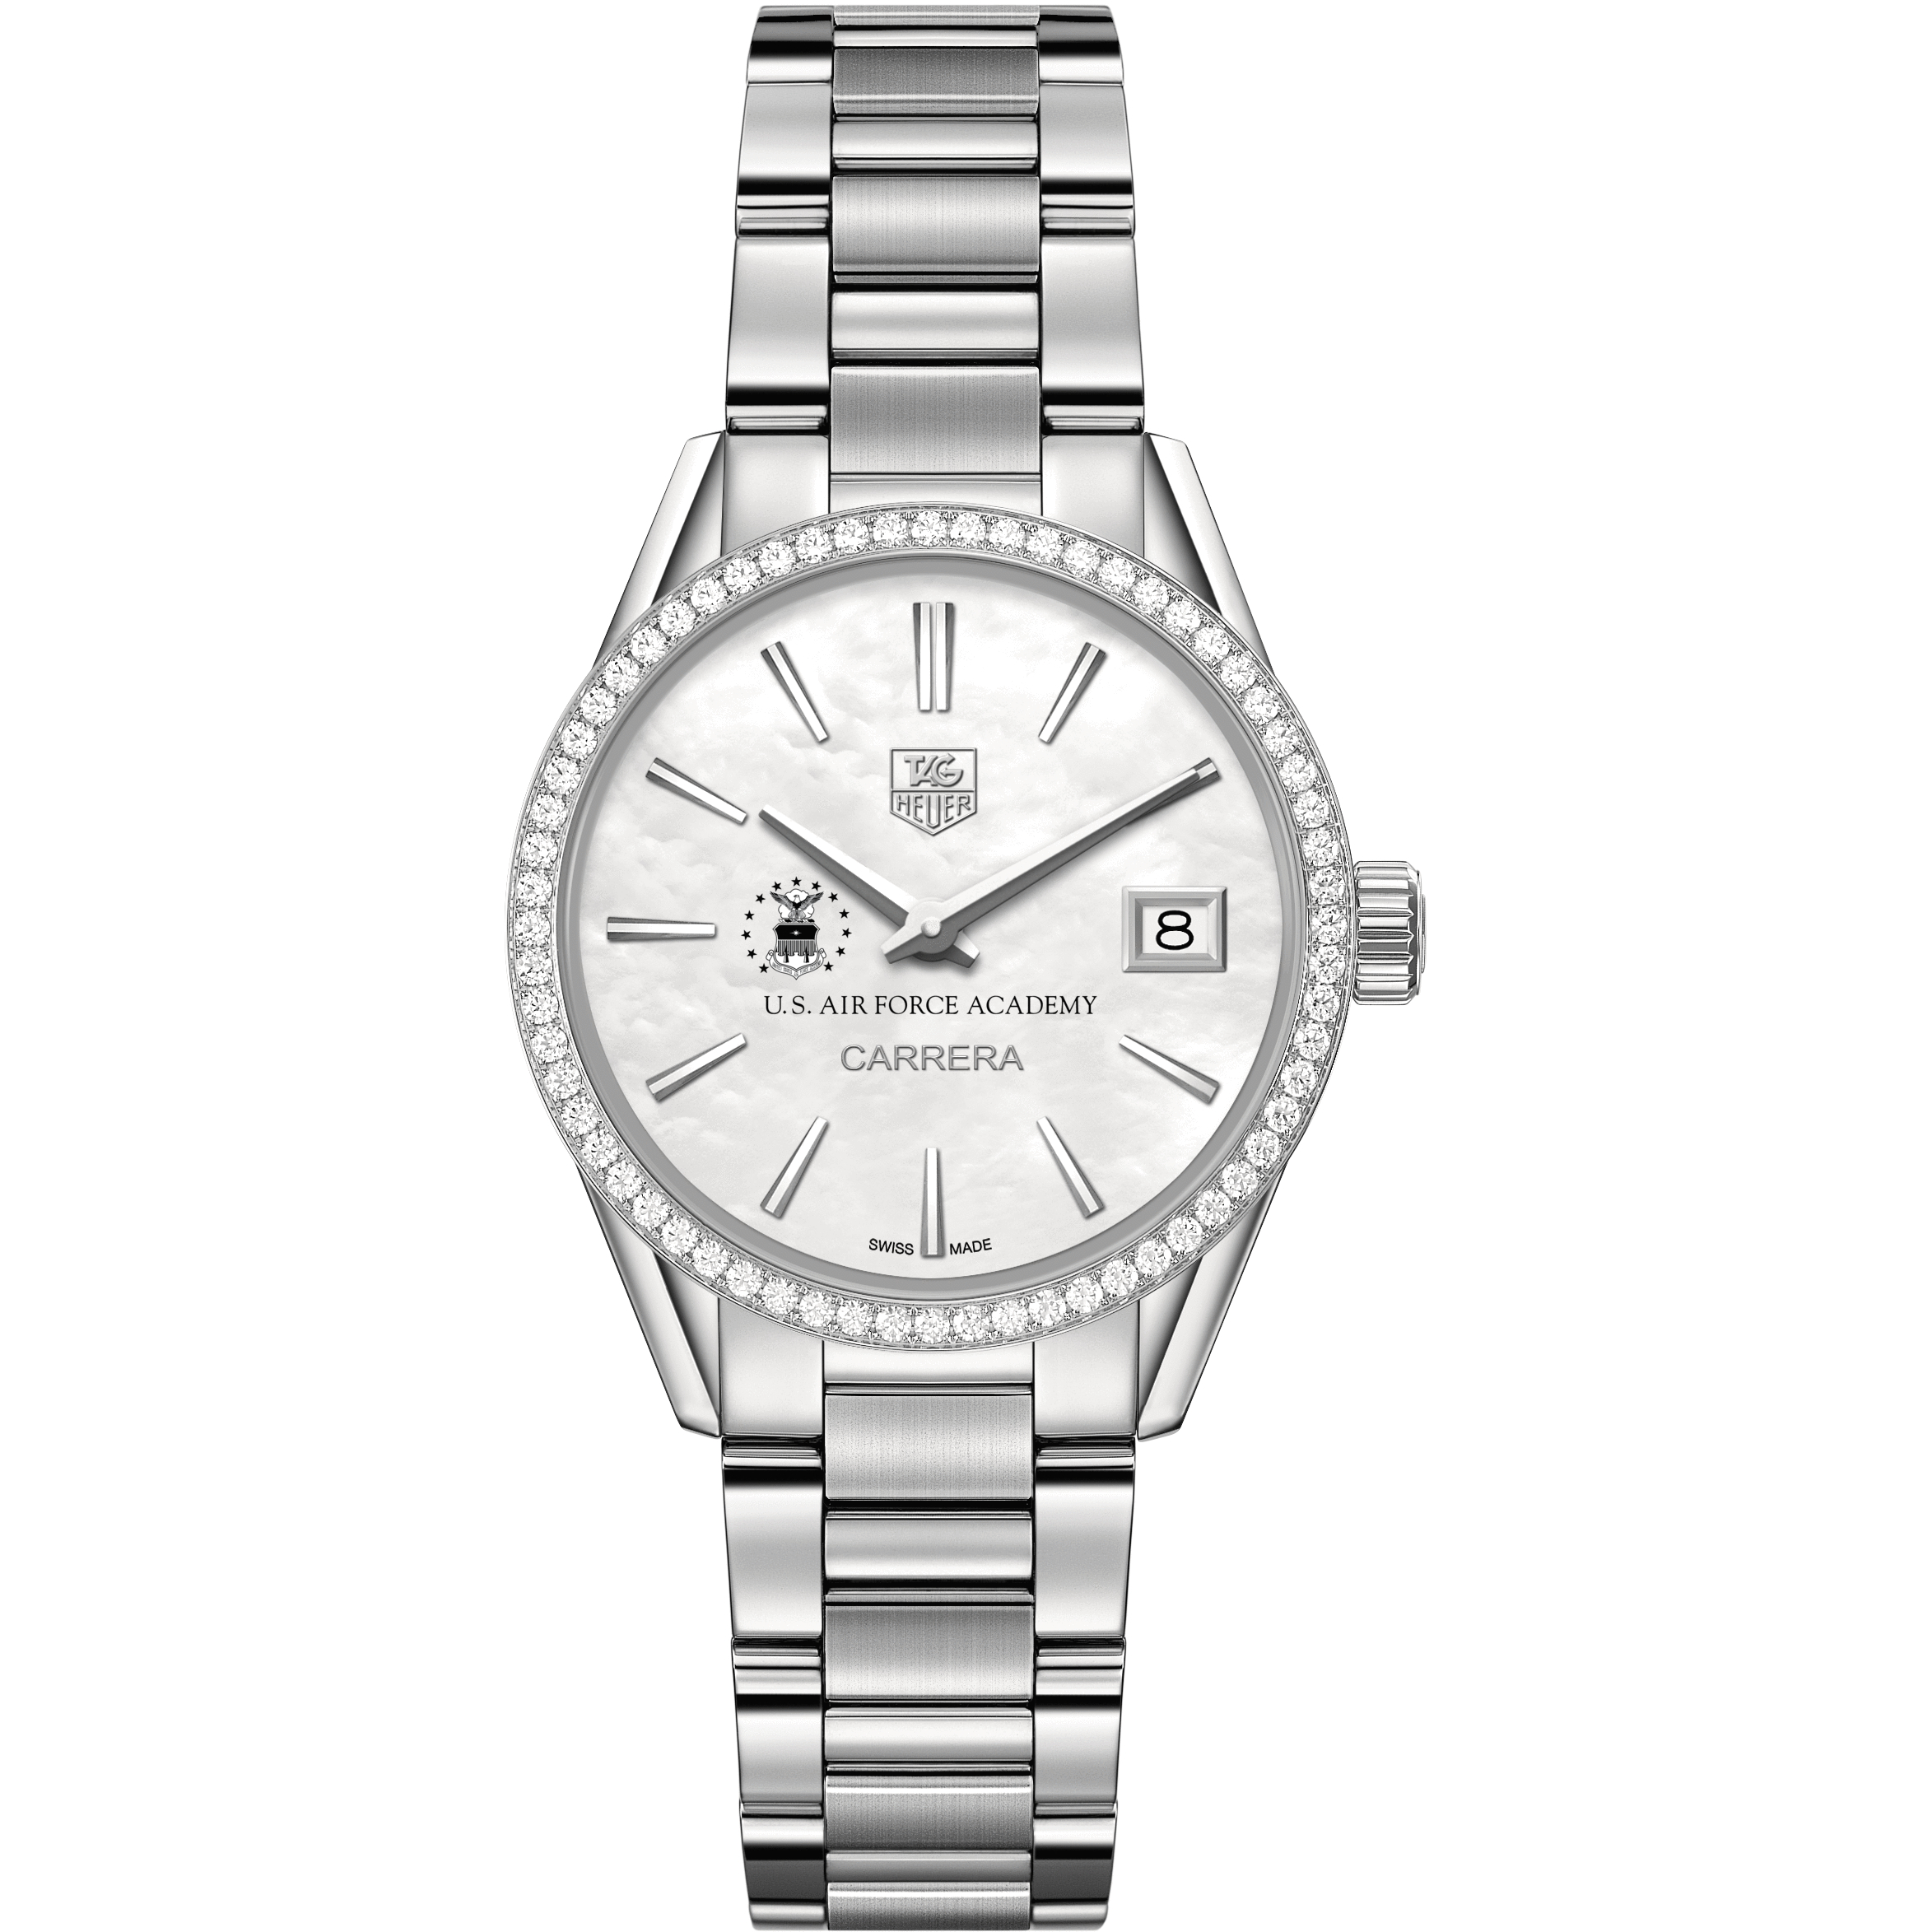 Air Force Academy Women's TAG Heuer Steel Carrera with MOP Dial & Diamond Bezel - Image 2